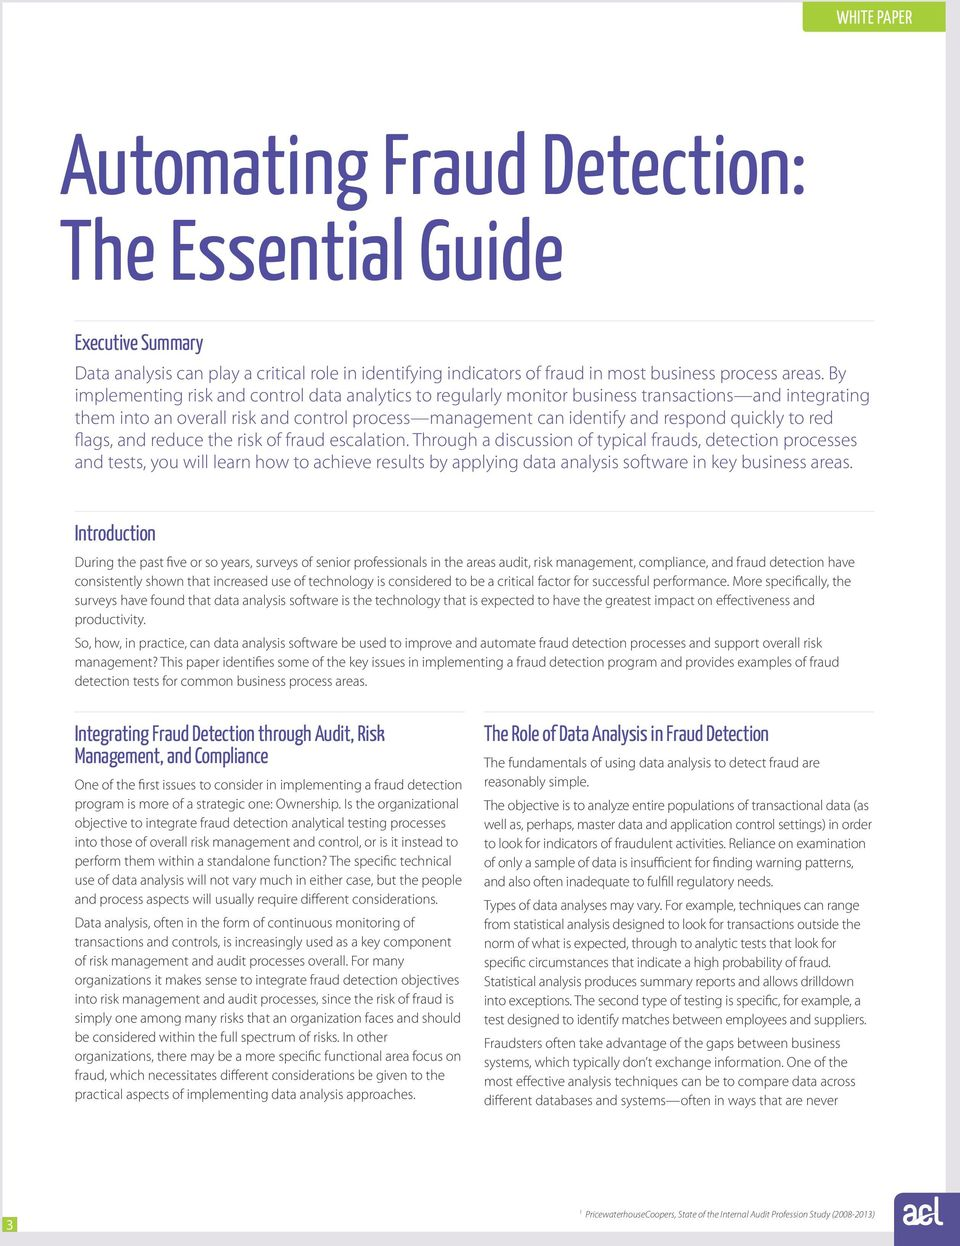 red flags, and reduce the risk of fraud escalation.